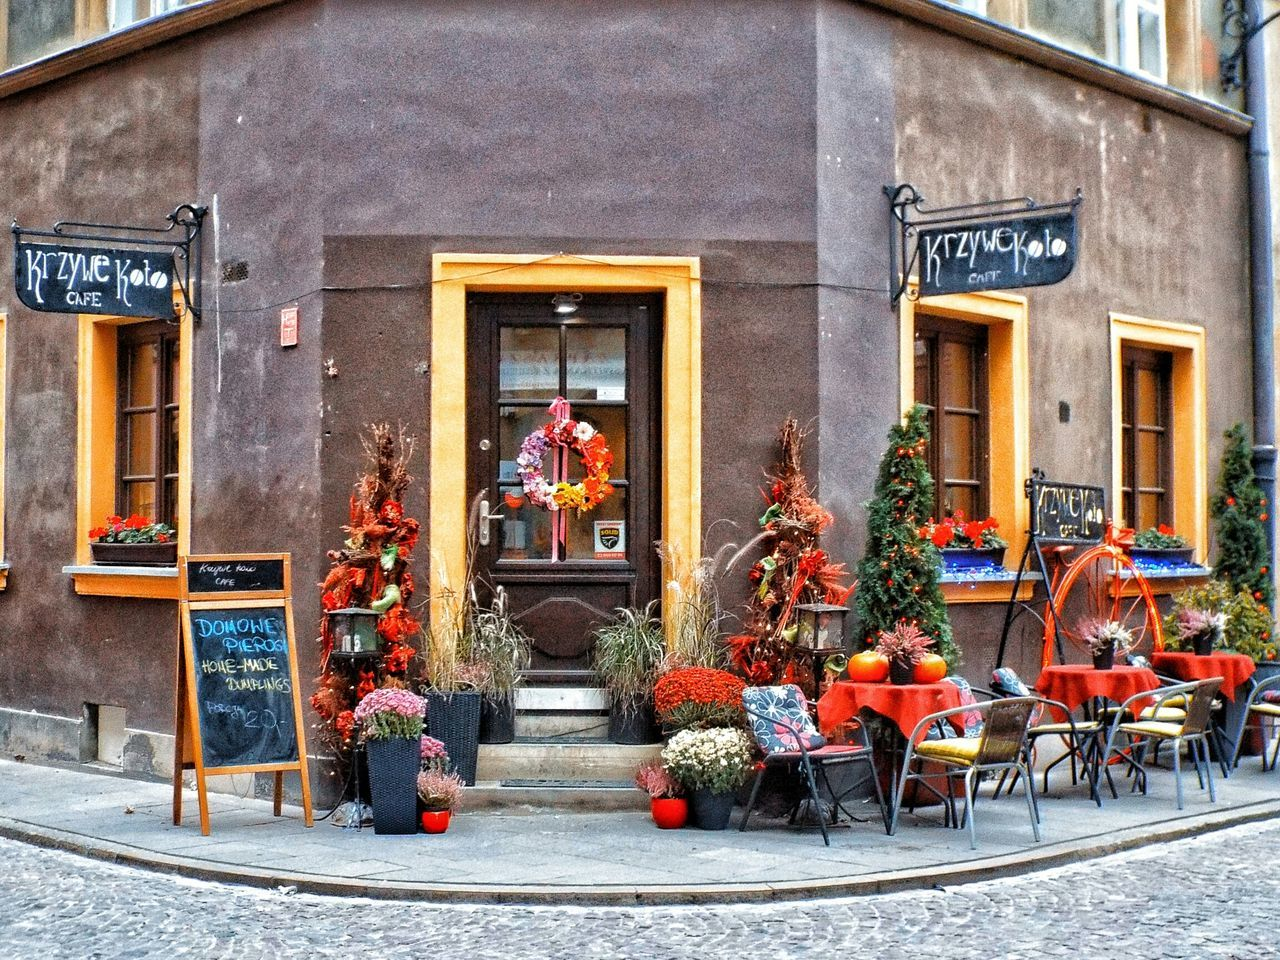 Building Exterior Architecture Built Structure Flower Façade Outdoors City Day Flowers Street Photography Warszawa  Cafe Restaurant Street Life Color Fiori Nature Flower Collection Eyem Gallery Caffè Exterior Building Exterior Decoration Decoracion Decorazioni EyeEm Gallery